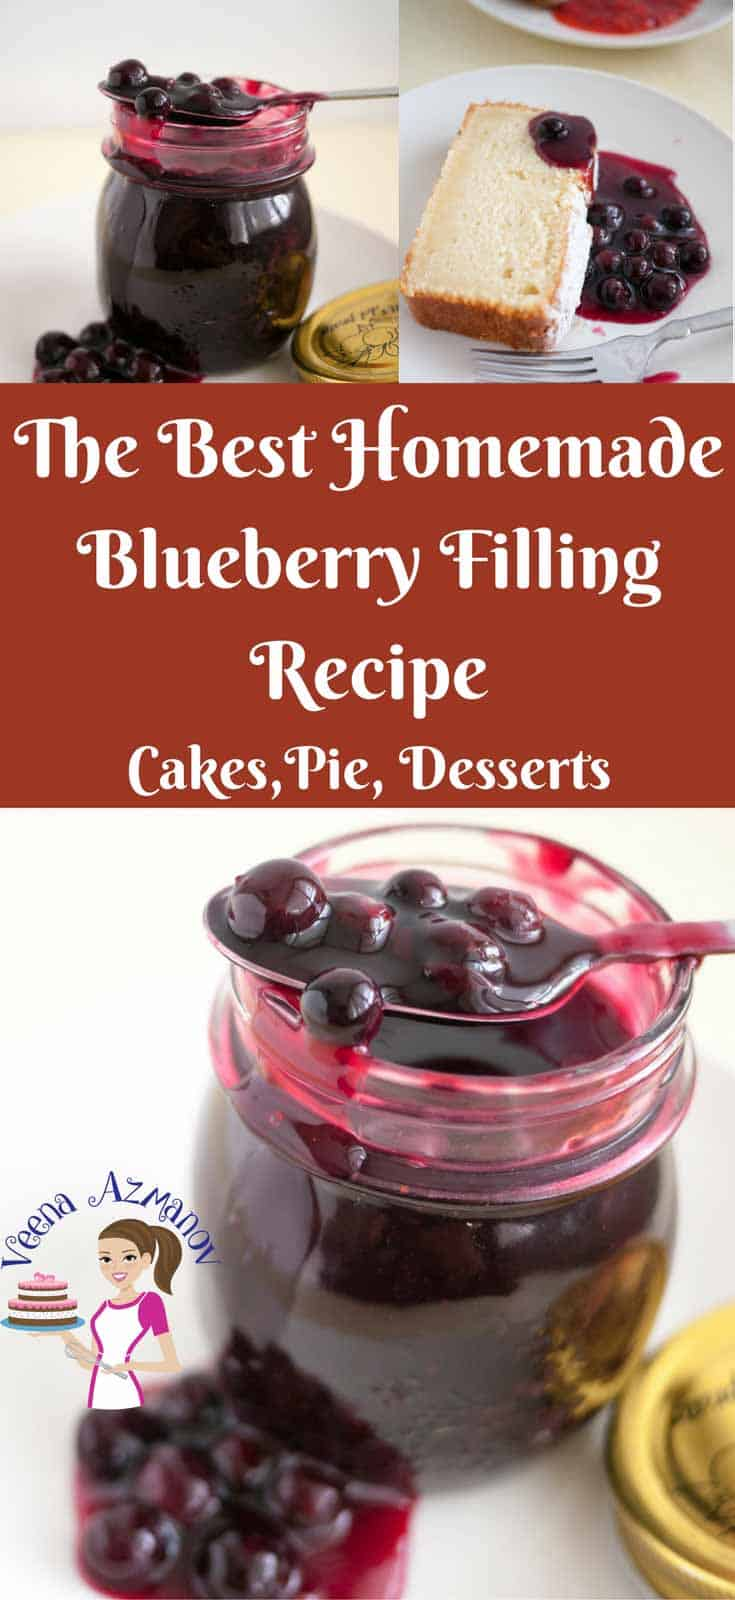 This homemade Blueberry Filling Recipe is simple and easy. It can be made from fresh or frozen blueberries. This filling is so versatile it goes well as a cake filling, pie filling or on the side of a delicious dessert like my classic pound cake recipe.